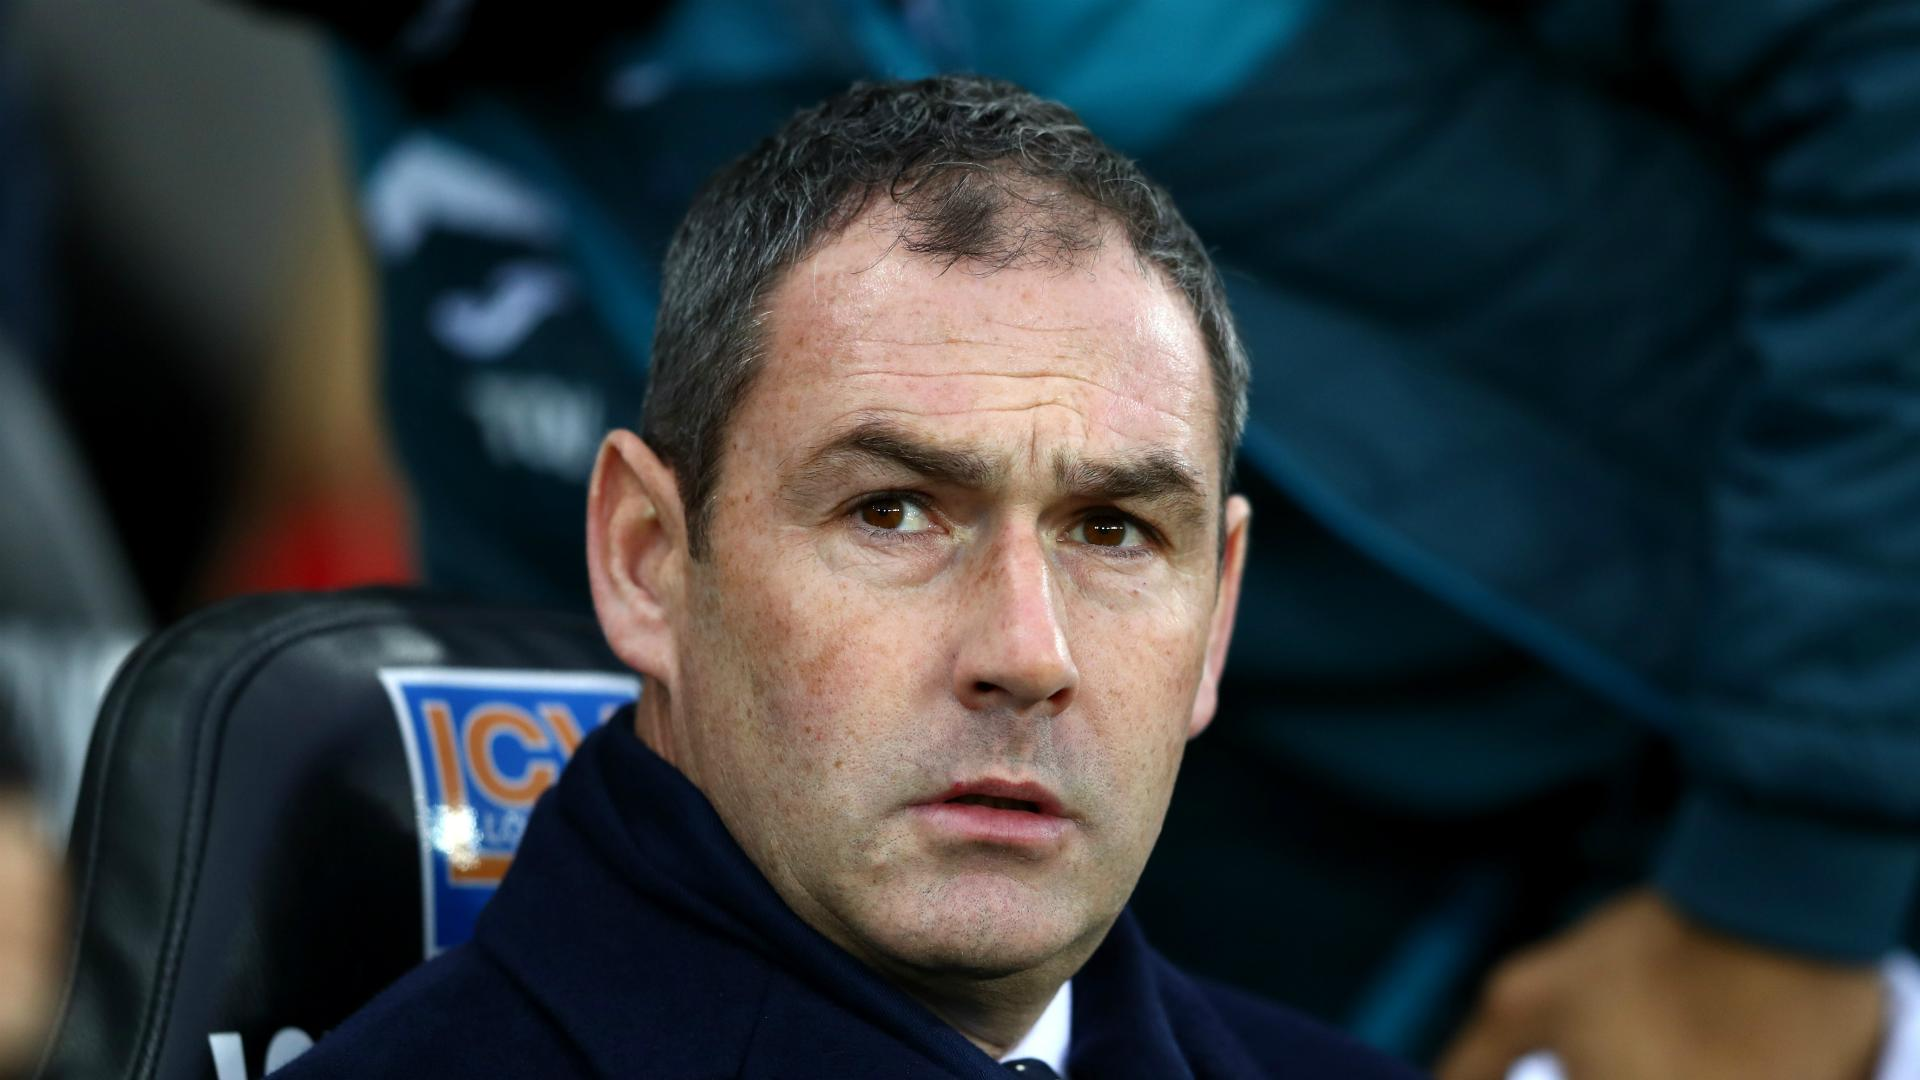 What To Expect For Uk After Departures: Clement Highlights 'very Challenging Circumstances' After